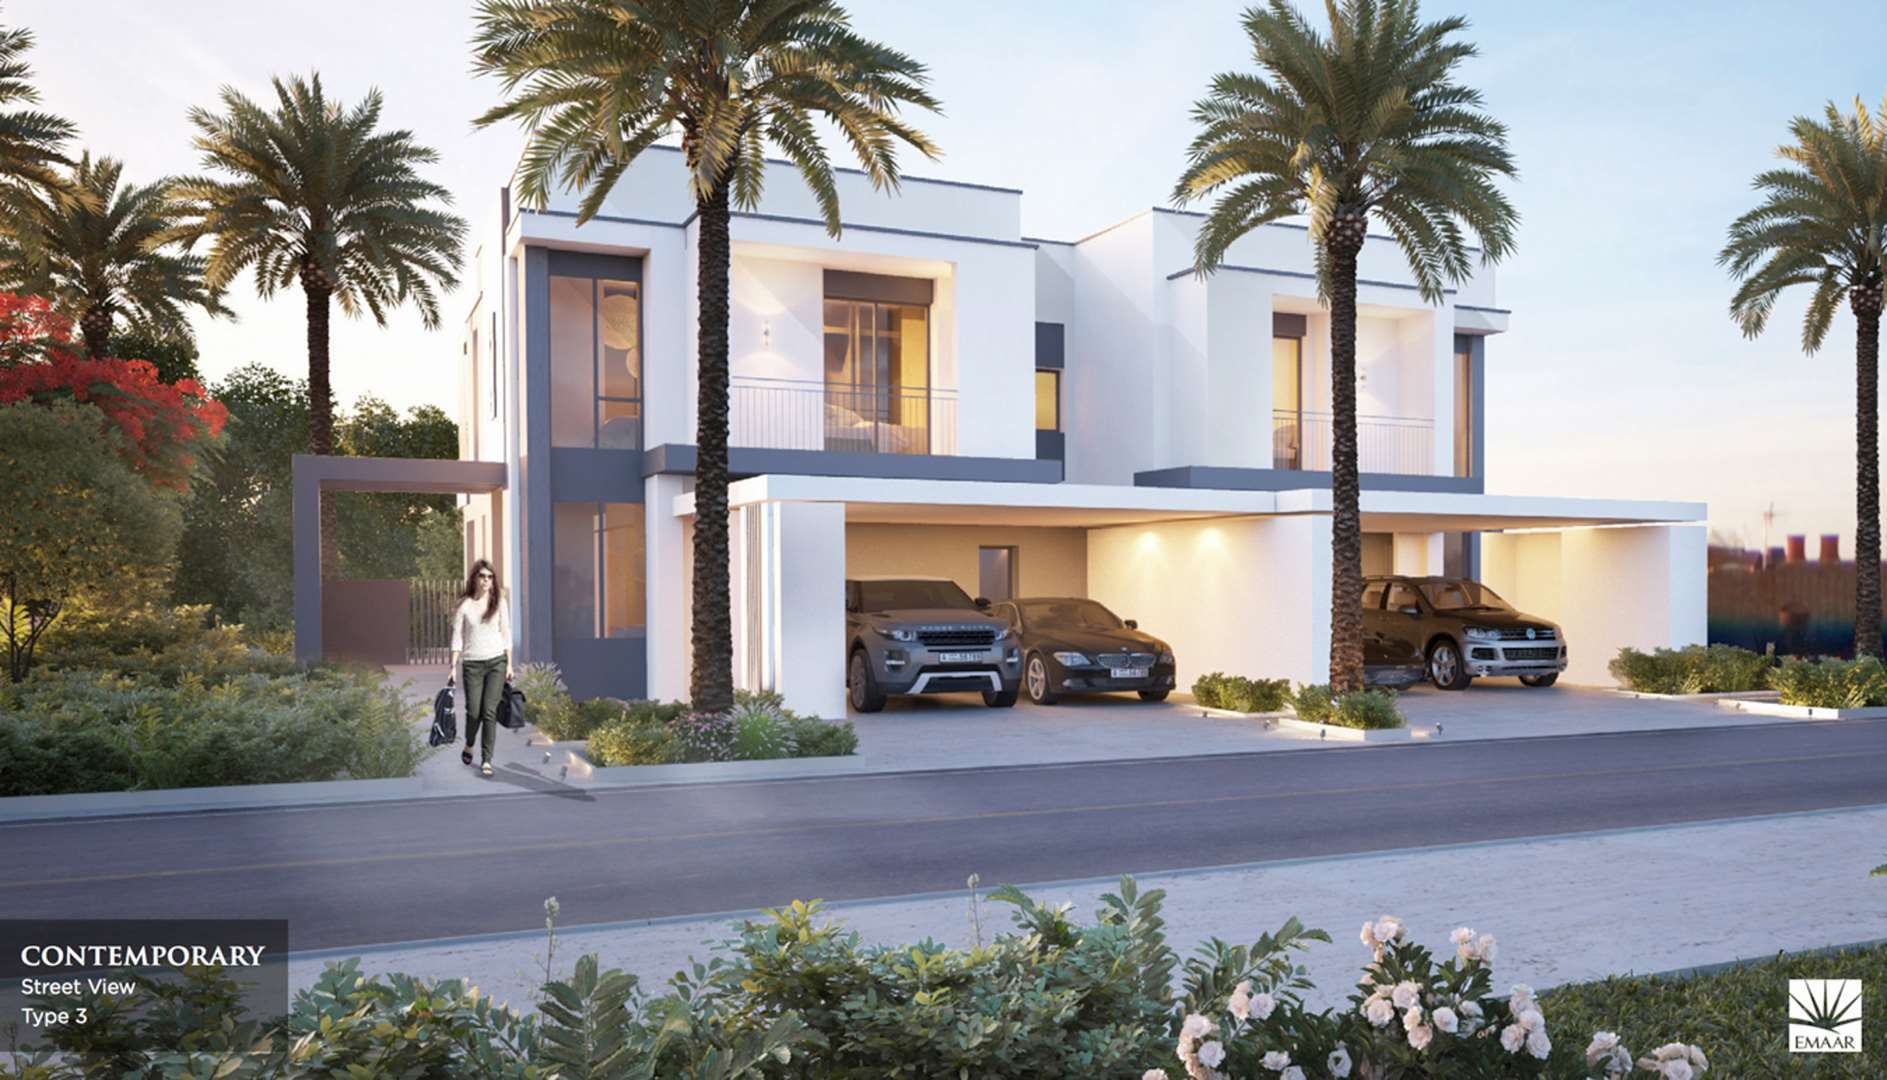 Luxury Property is delighted to present Maple, an